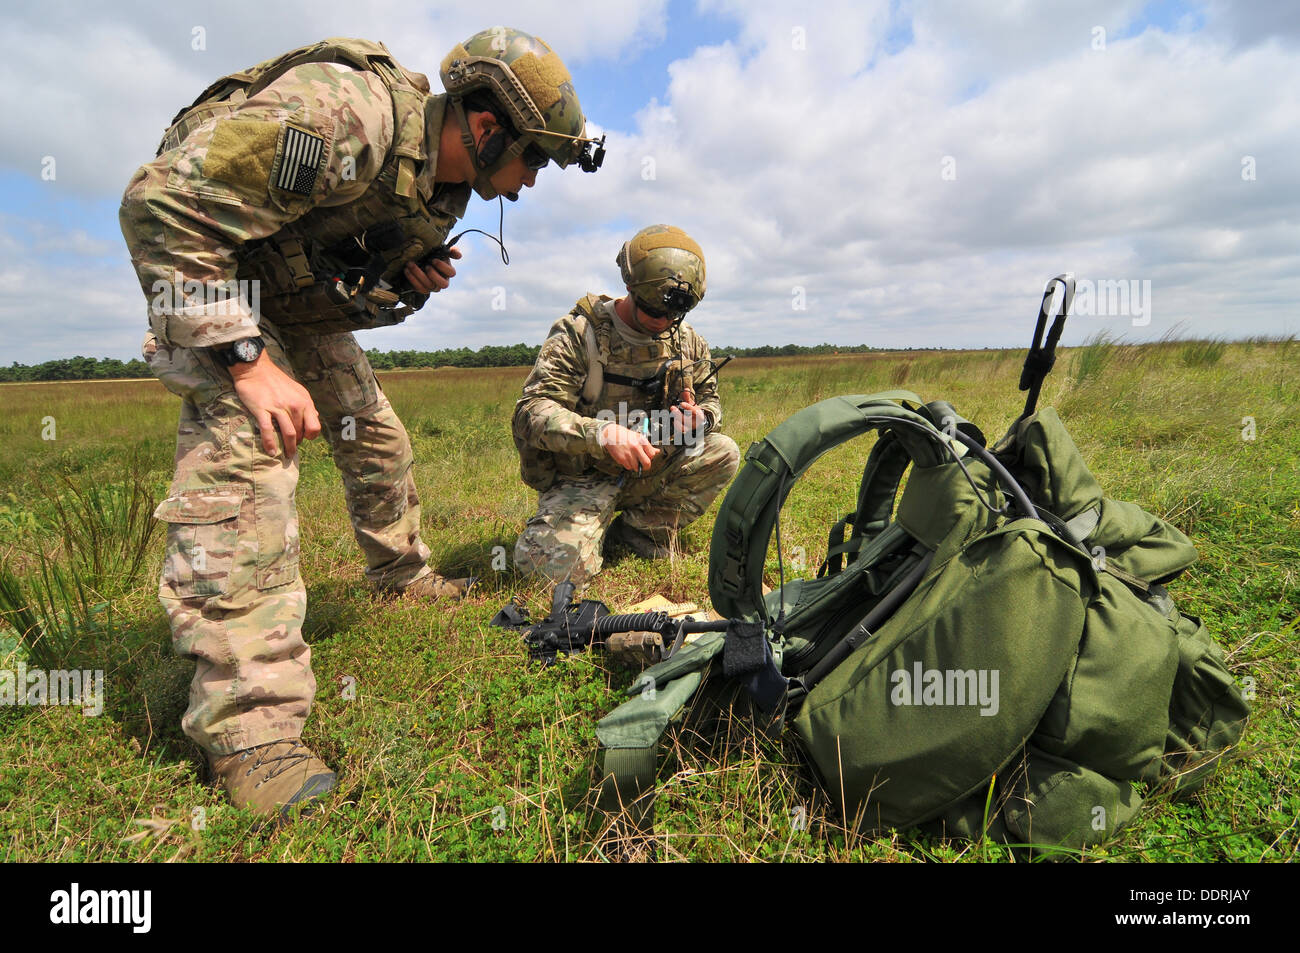 U.S. Air Force Staff Sgt. Kane Lawlor (left), and Airman First Class Joshua Darins (right) use radios to communicate with a UH-60 Black Hawk helicopter from the New Jersey Army National Guard's 1-150 Assault Helicopter Battalion during training at Warren - Stock Image